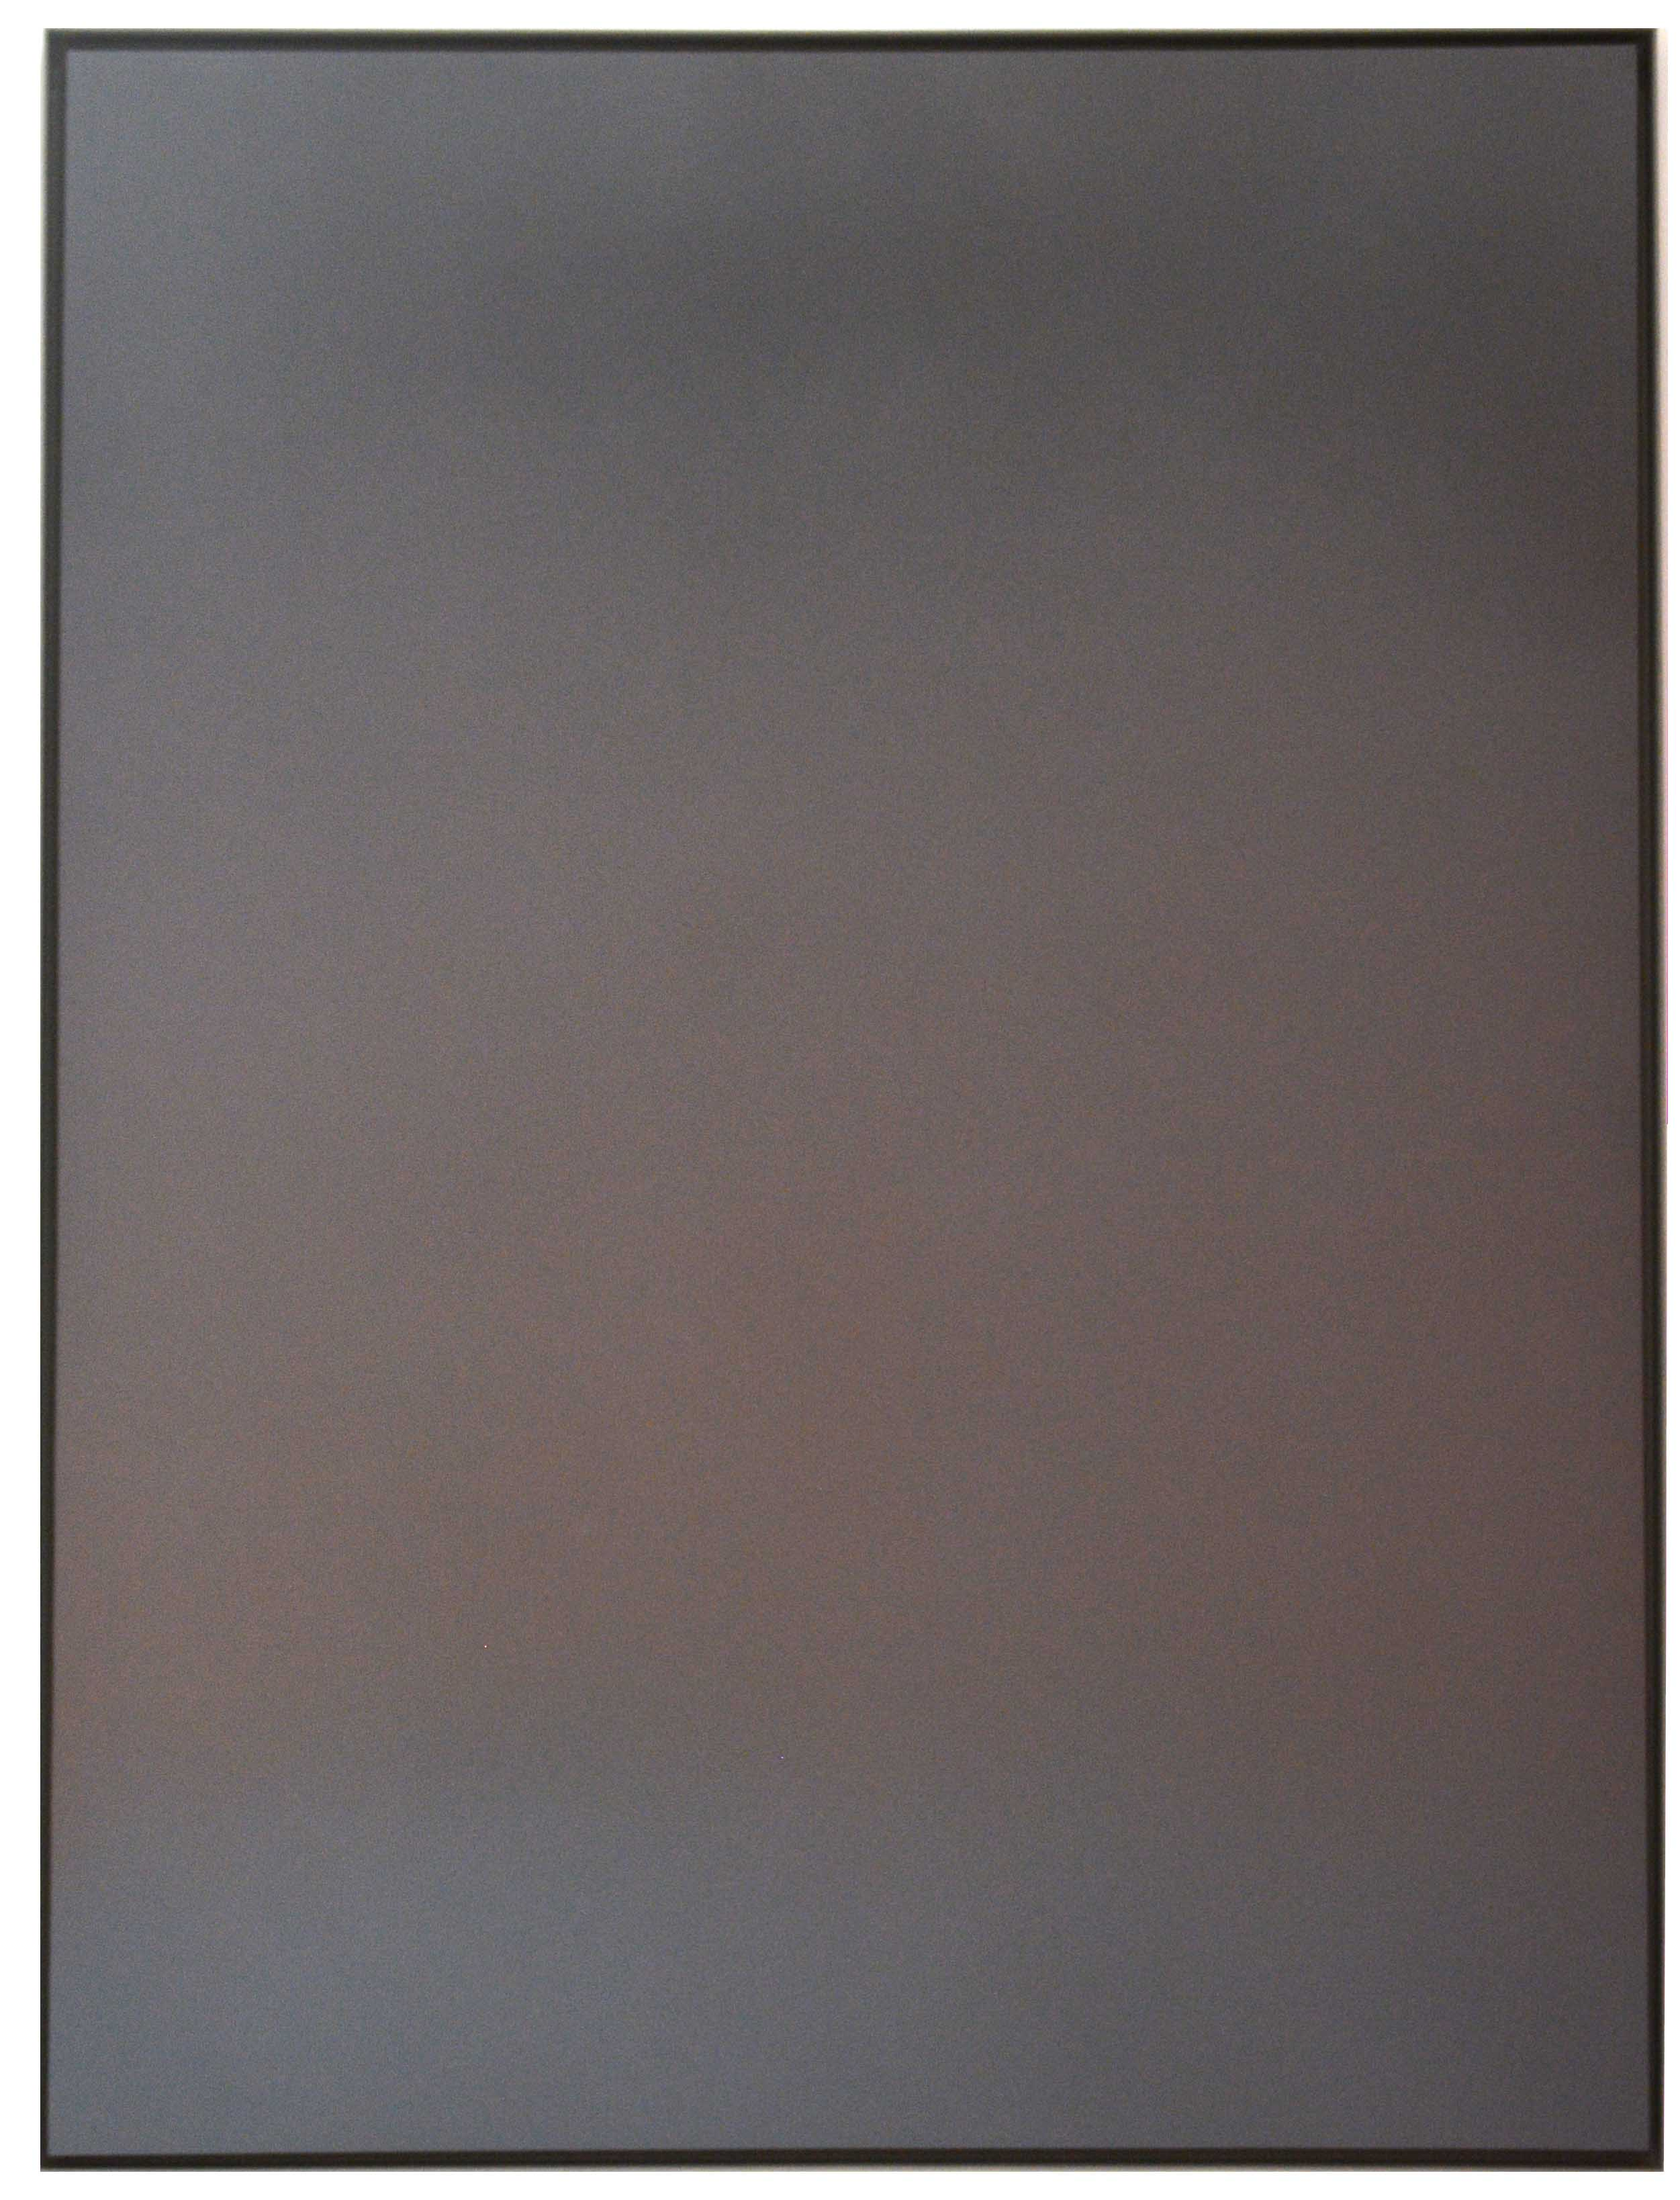 Untitled (For Rothko)